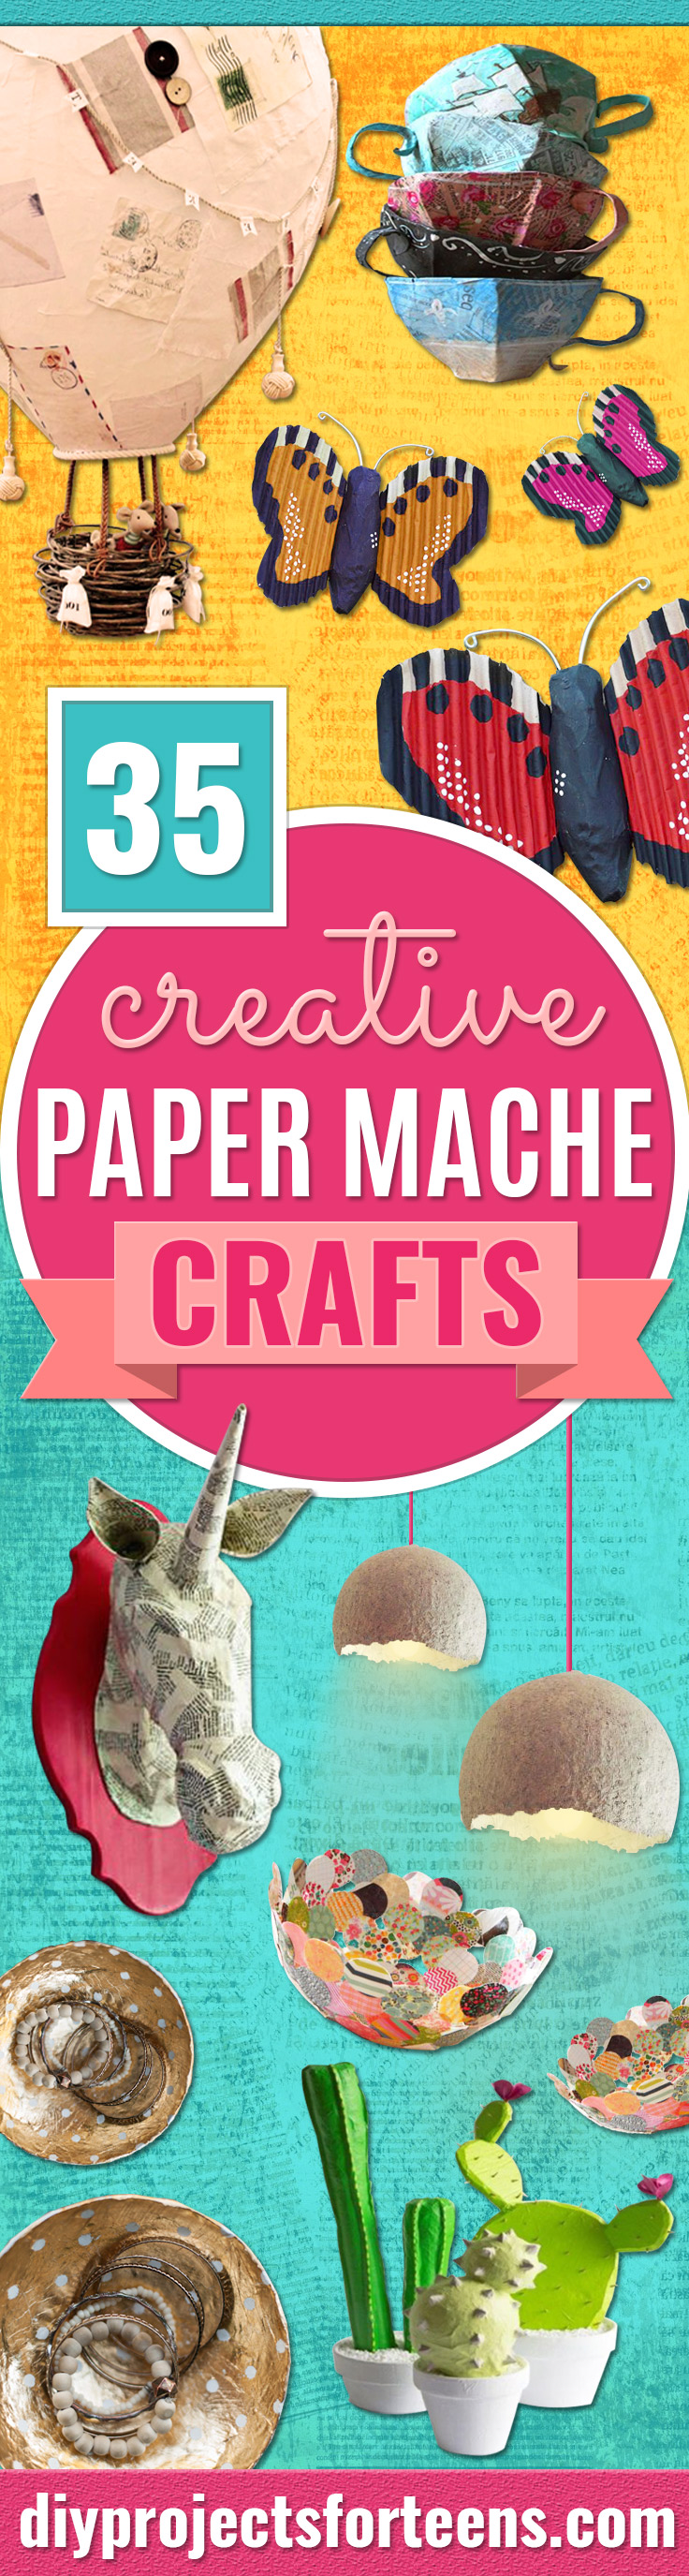 Creative Paper Mache Crafts - Easy DIY Ideas for Making Paper Mache Projects - Cool Newspaper and Paper Bag Craft Tips - Recipe for for How To Make Homemade Paper Mashe paste - Halloween Masks and Costume Tutorials - Sculpture, Animals and Ideas for Kids #diyideas #papermache #teencrafts #crafts